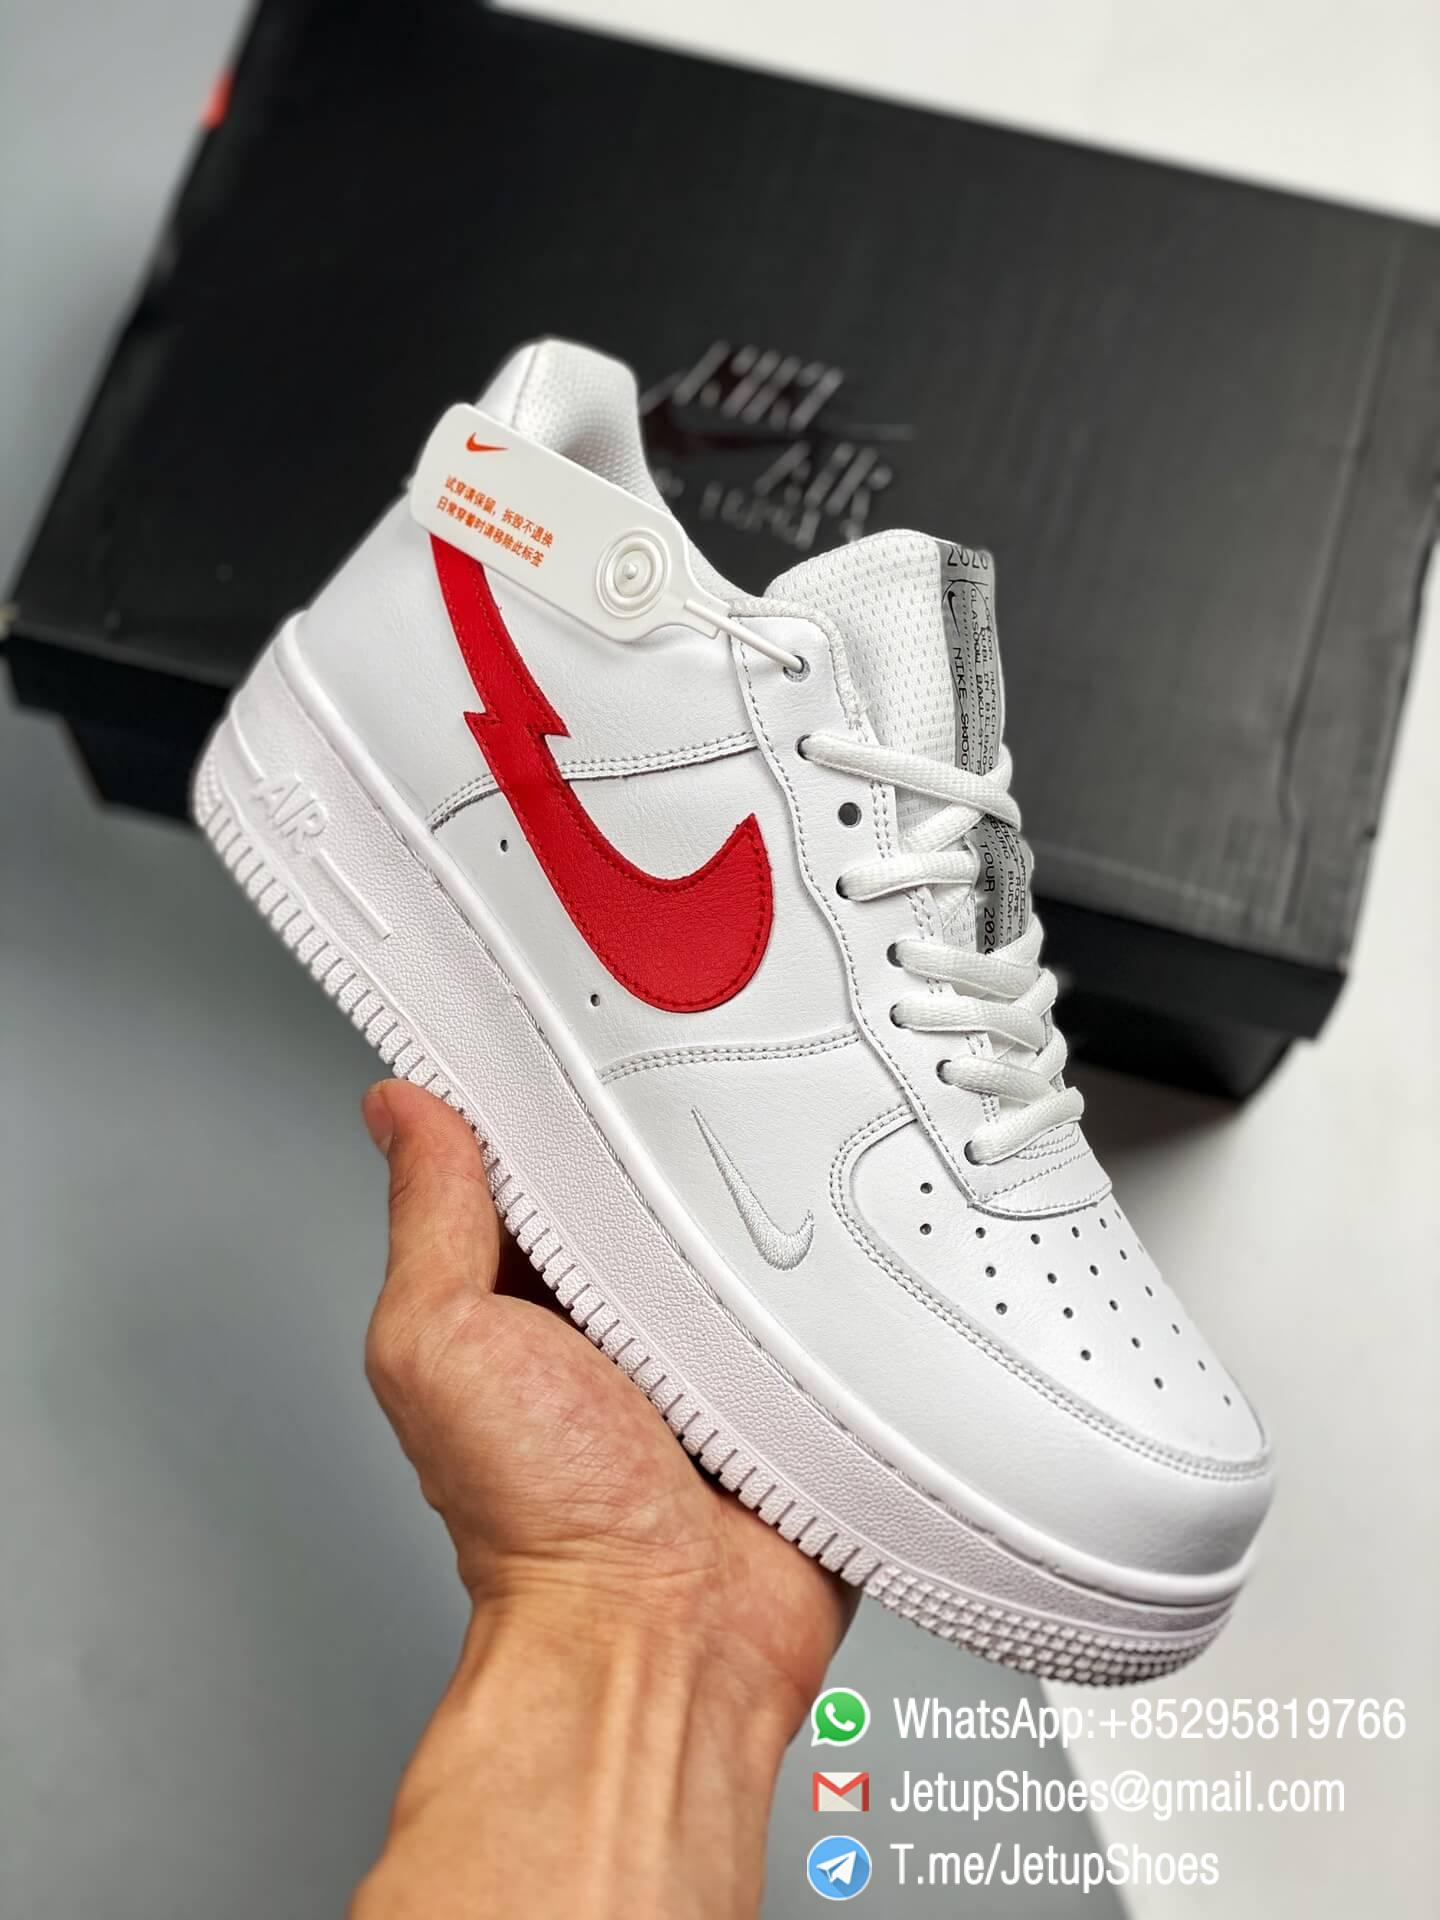 RepSneakers Nike Air Force 1 Low Euro Tour 2020 White & University Red-Midnight Navy SKU CW7577-100 Best Clone SNKRS